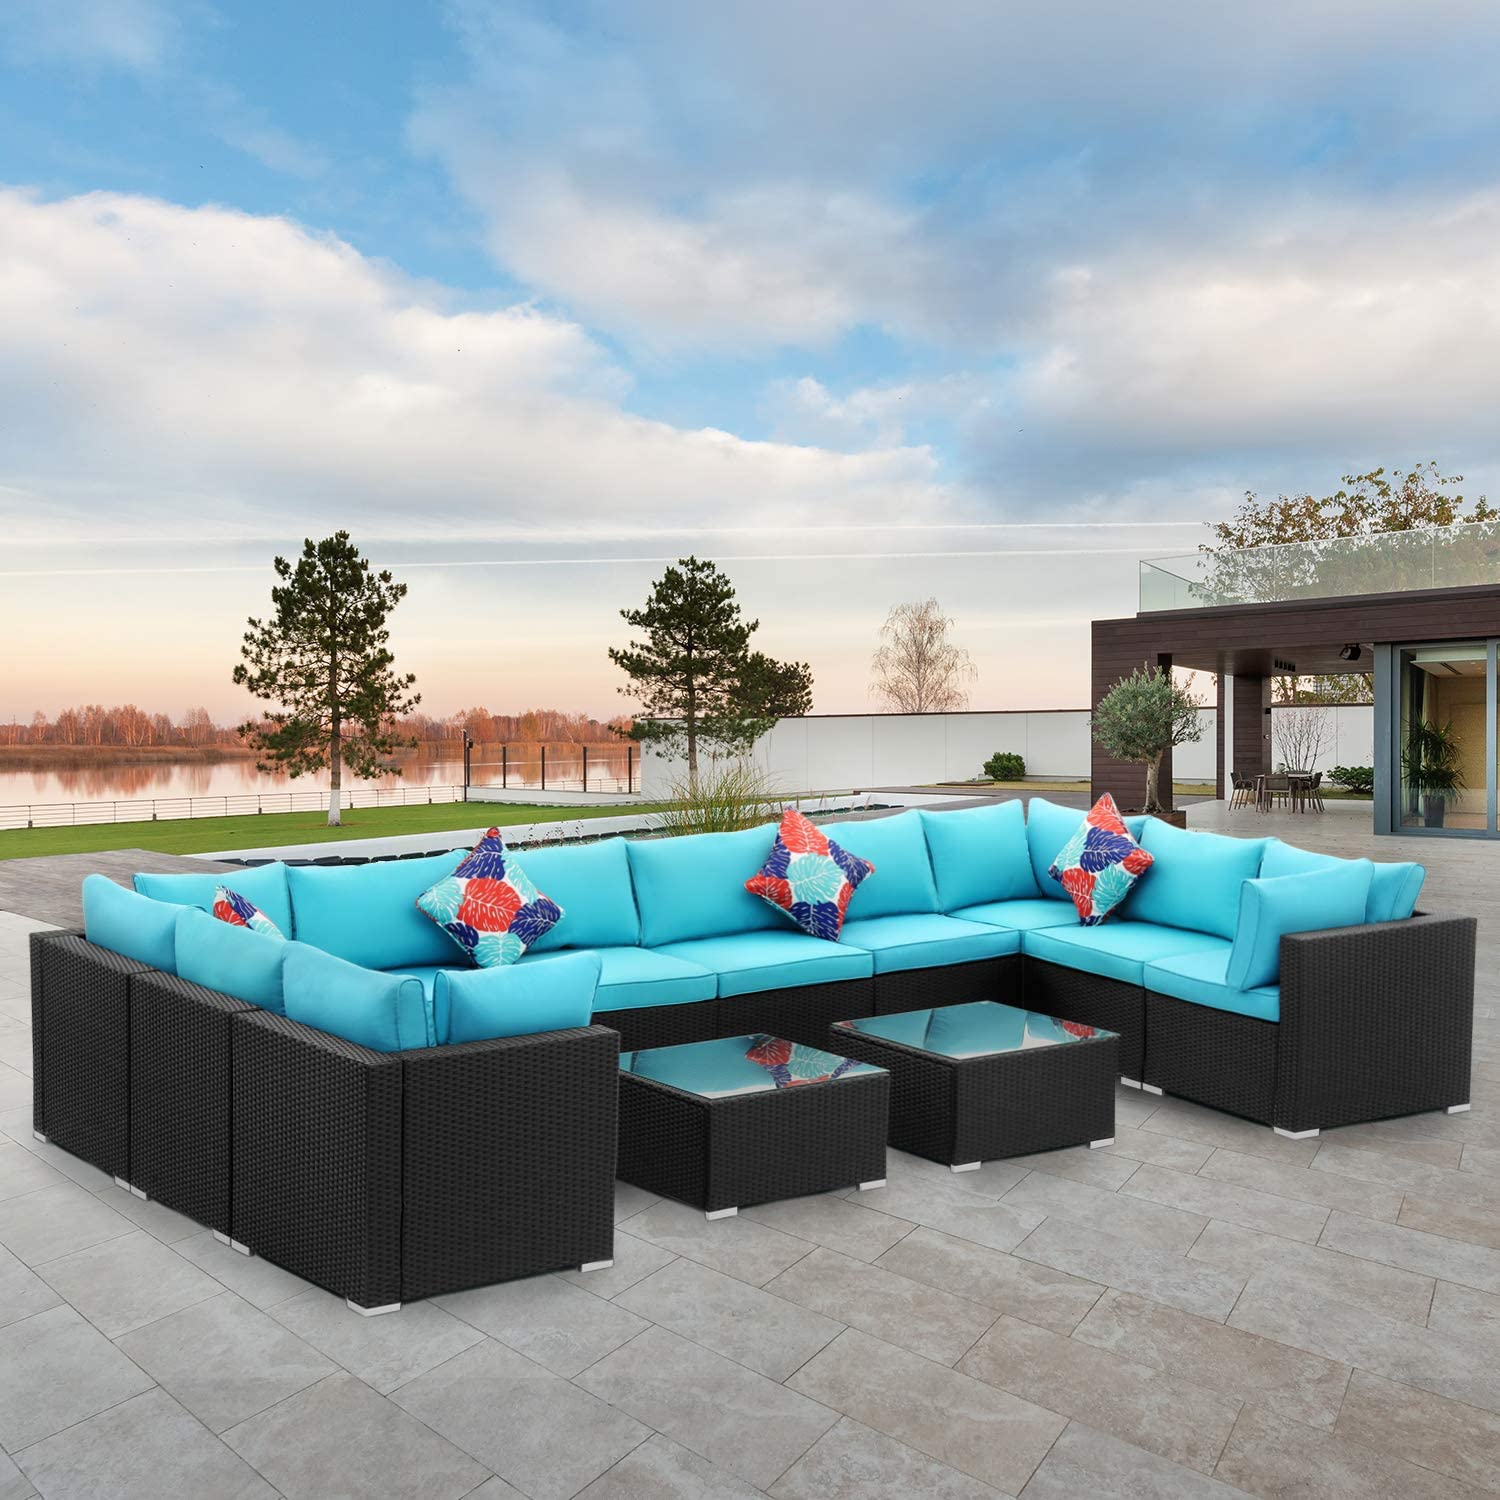 Diophros 12 Pieces Patio Furniture Sets, Outdoor All-Weather Sectional Sofa, Weaving Wicker Rattan Patio Conversation Set with Cushions & Glass Coffee Table (Lake Blue)